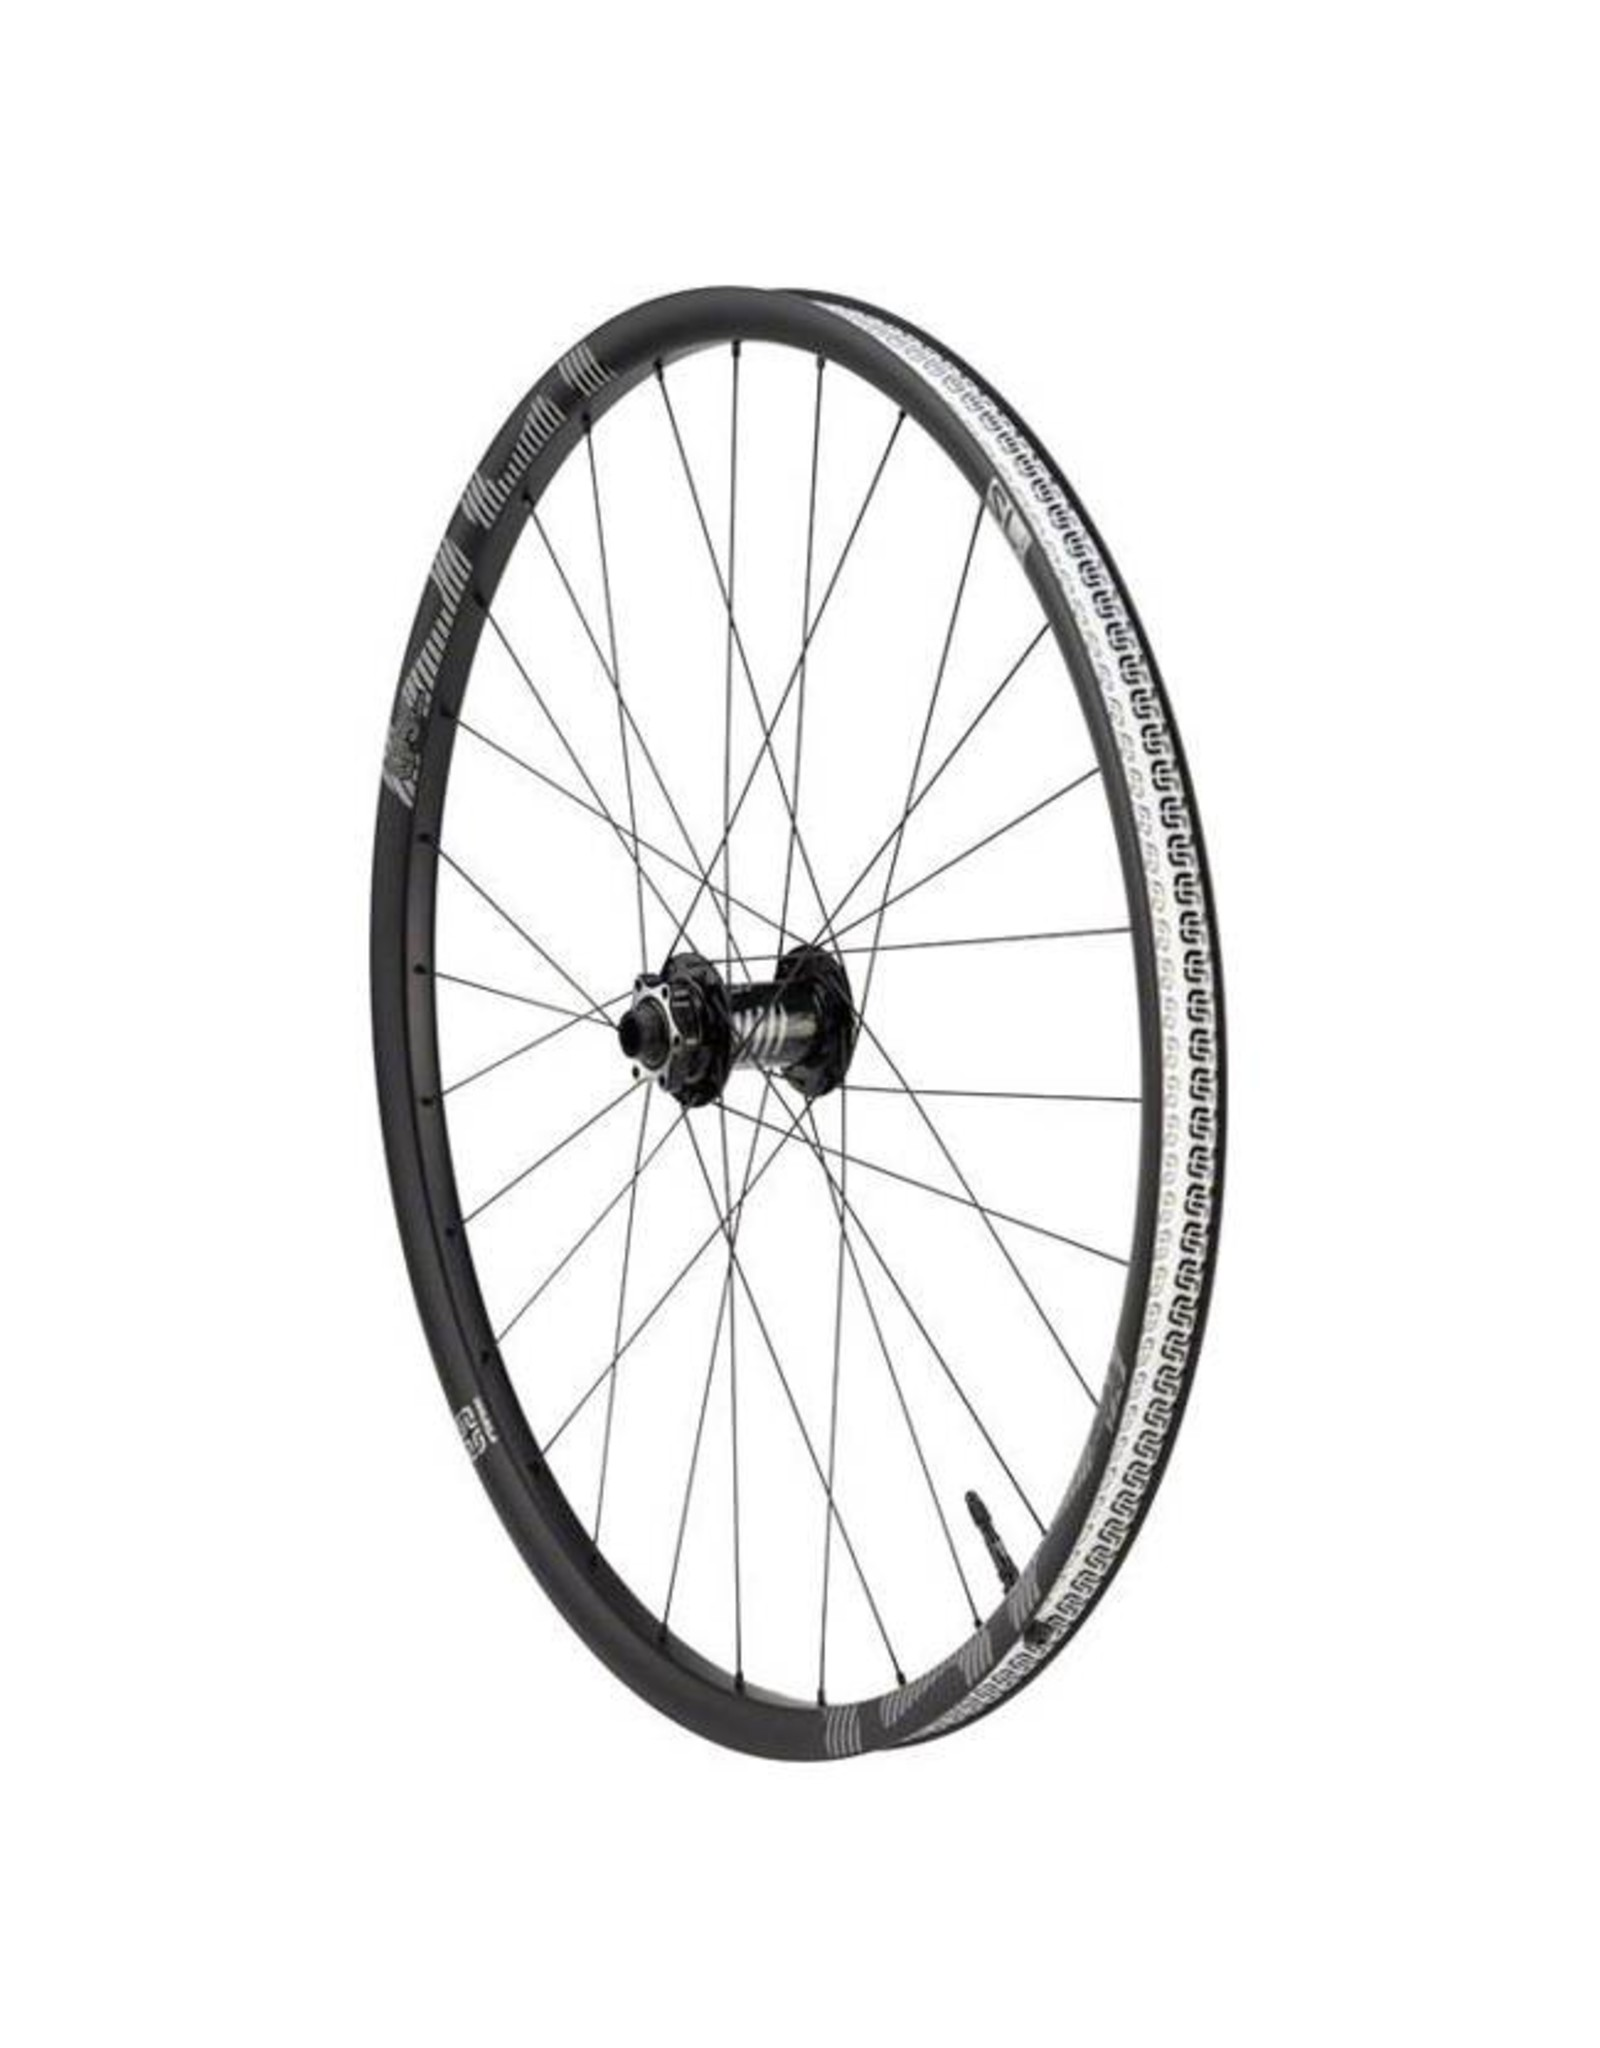 "e*thirteen by The Hive e*thirteen TRSr SL Rear Wheel 29"" 12x148mm Boost Compatible Tubeless, Black, Shimano HG Freehub"